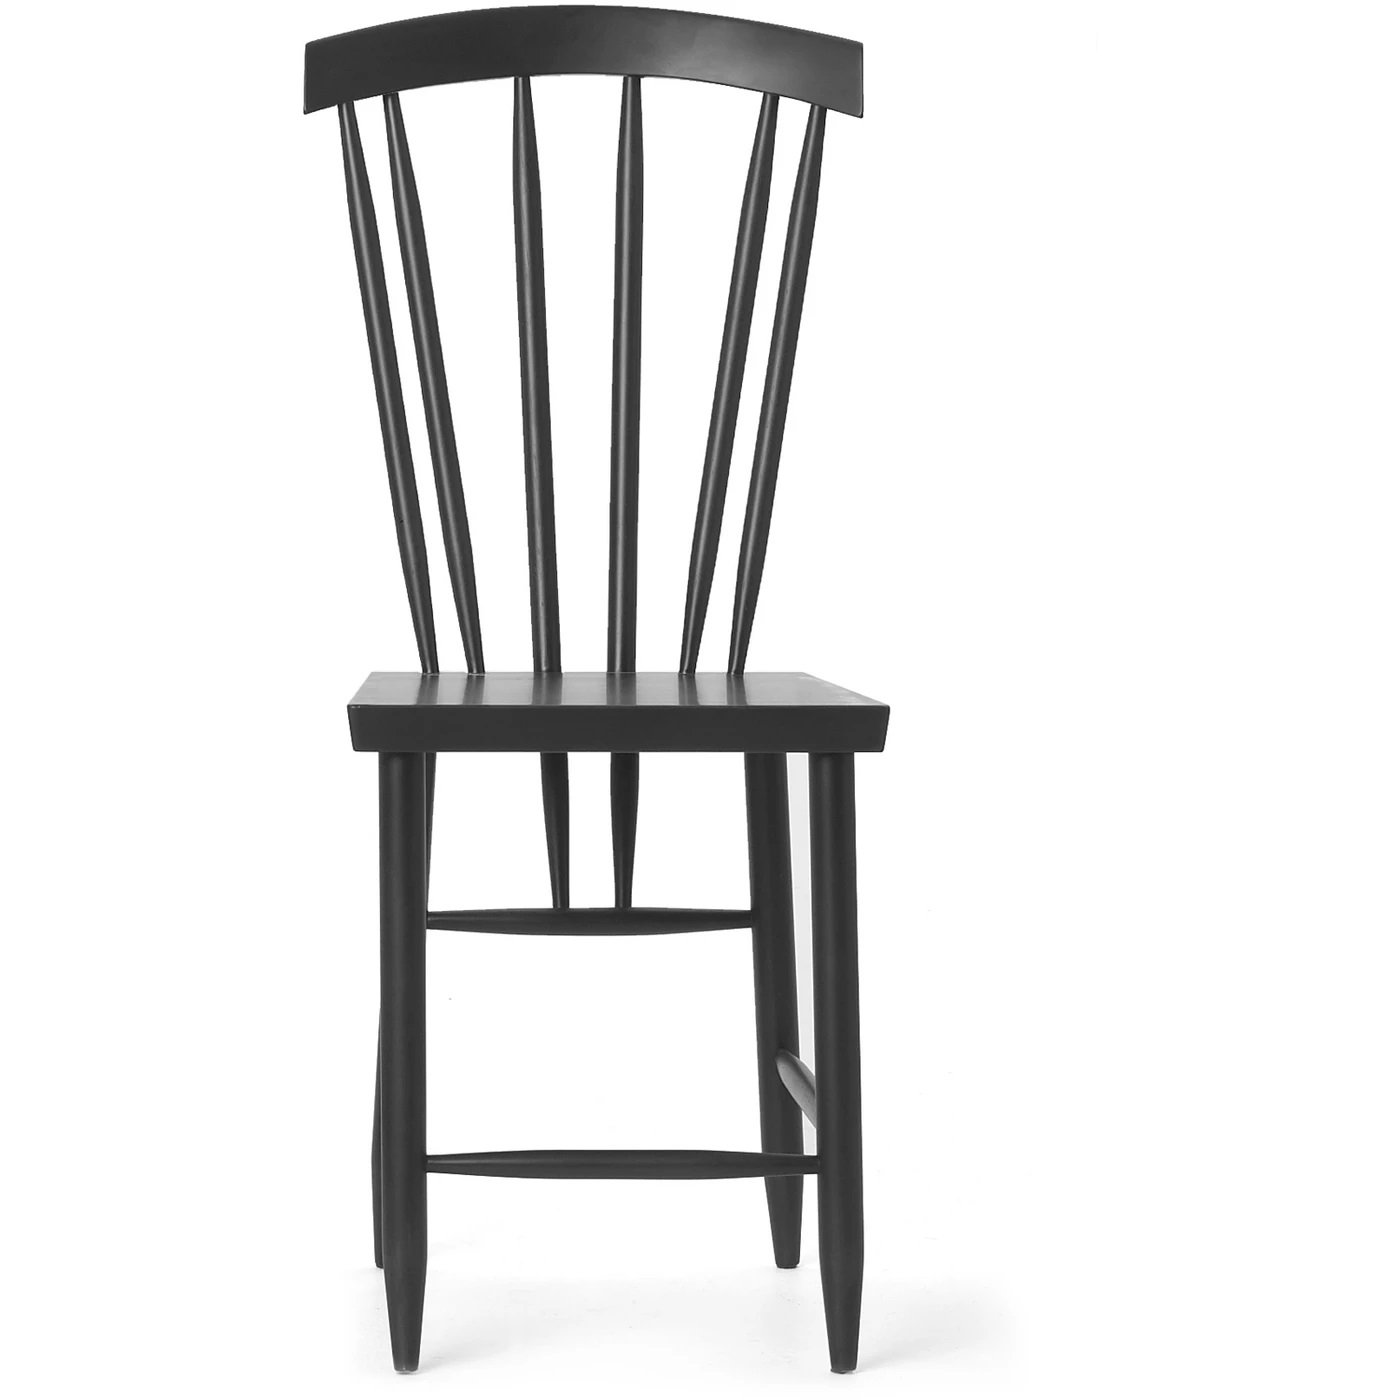 DESIGN HOUSE STOCKHOLM Family Chair No.3 - Set of 2 Black Without Cushion